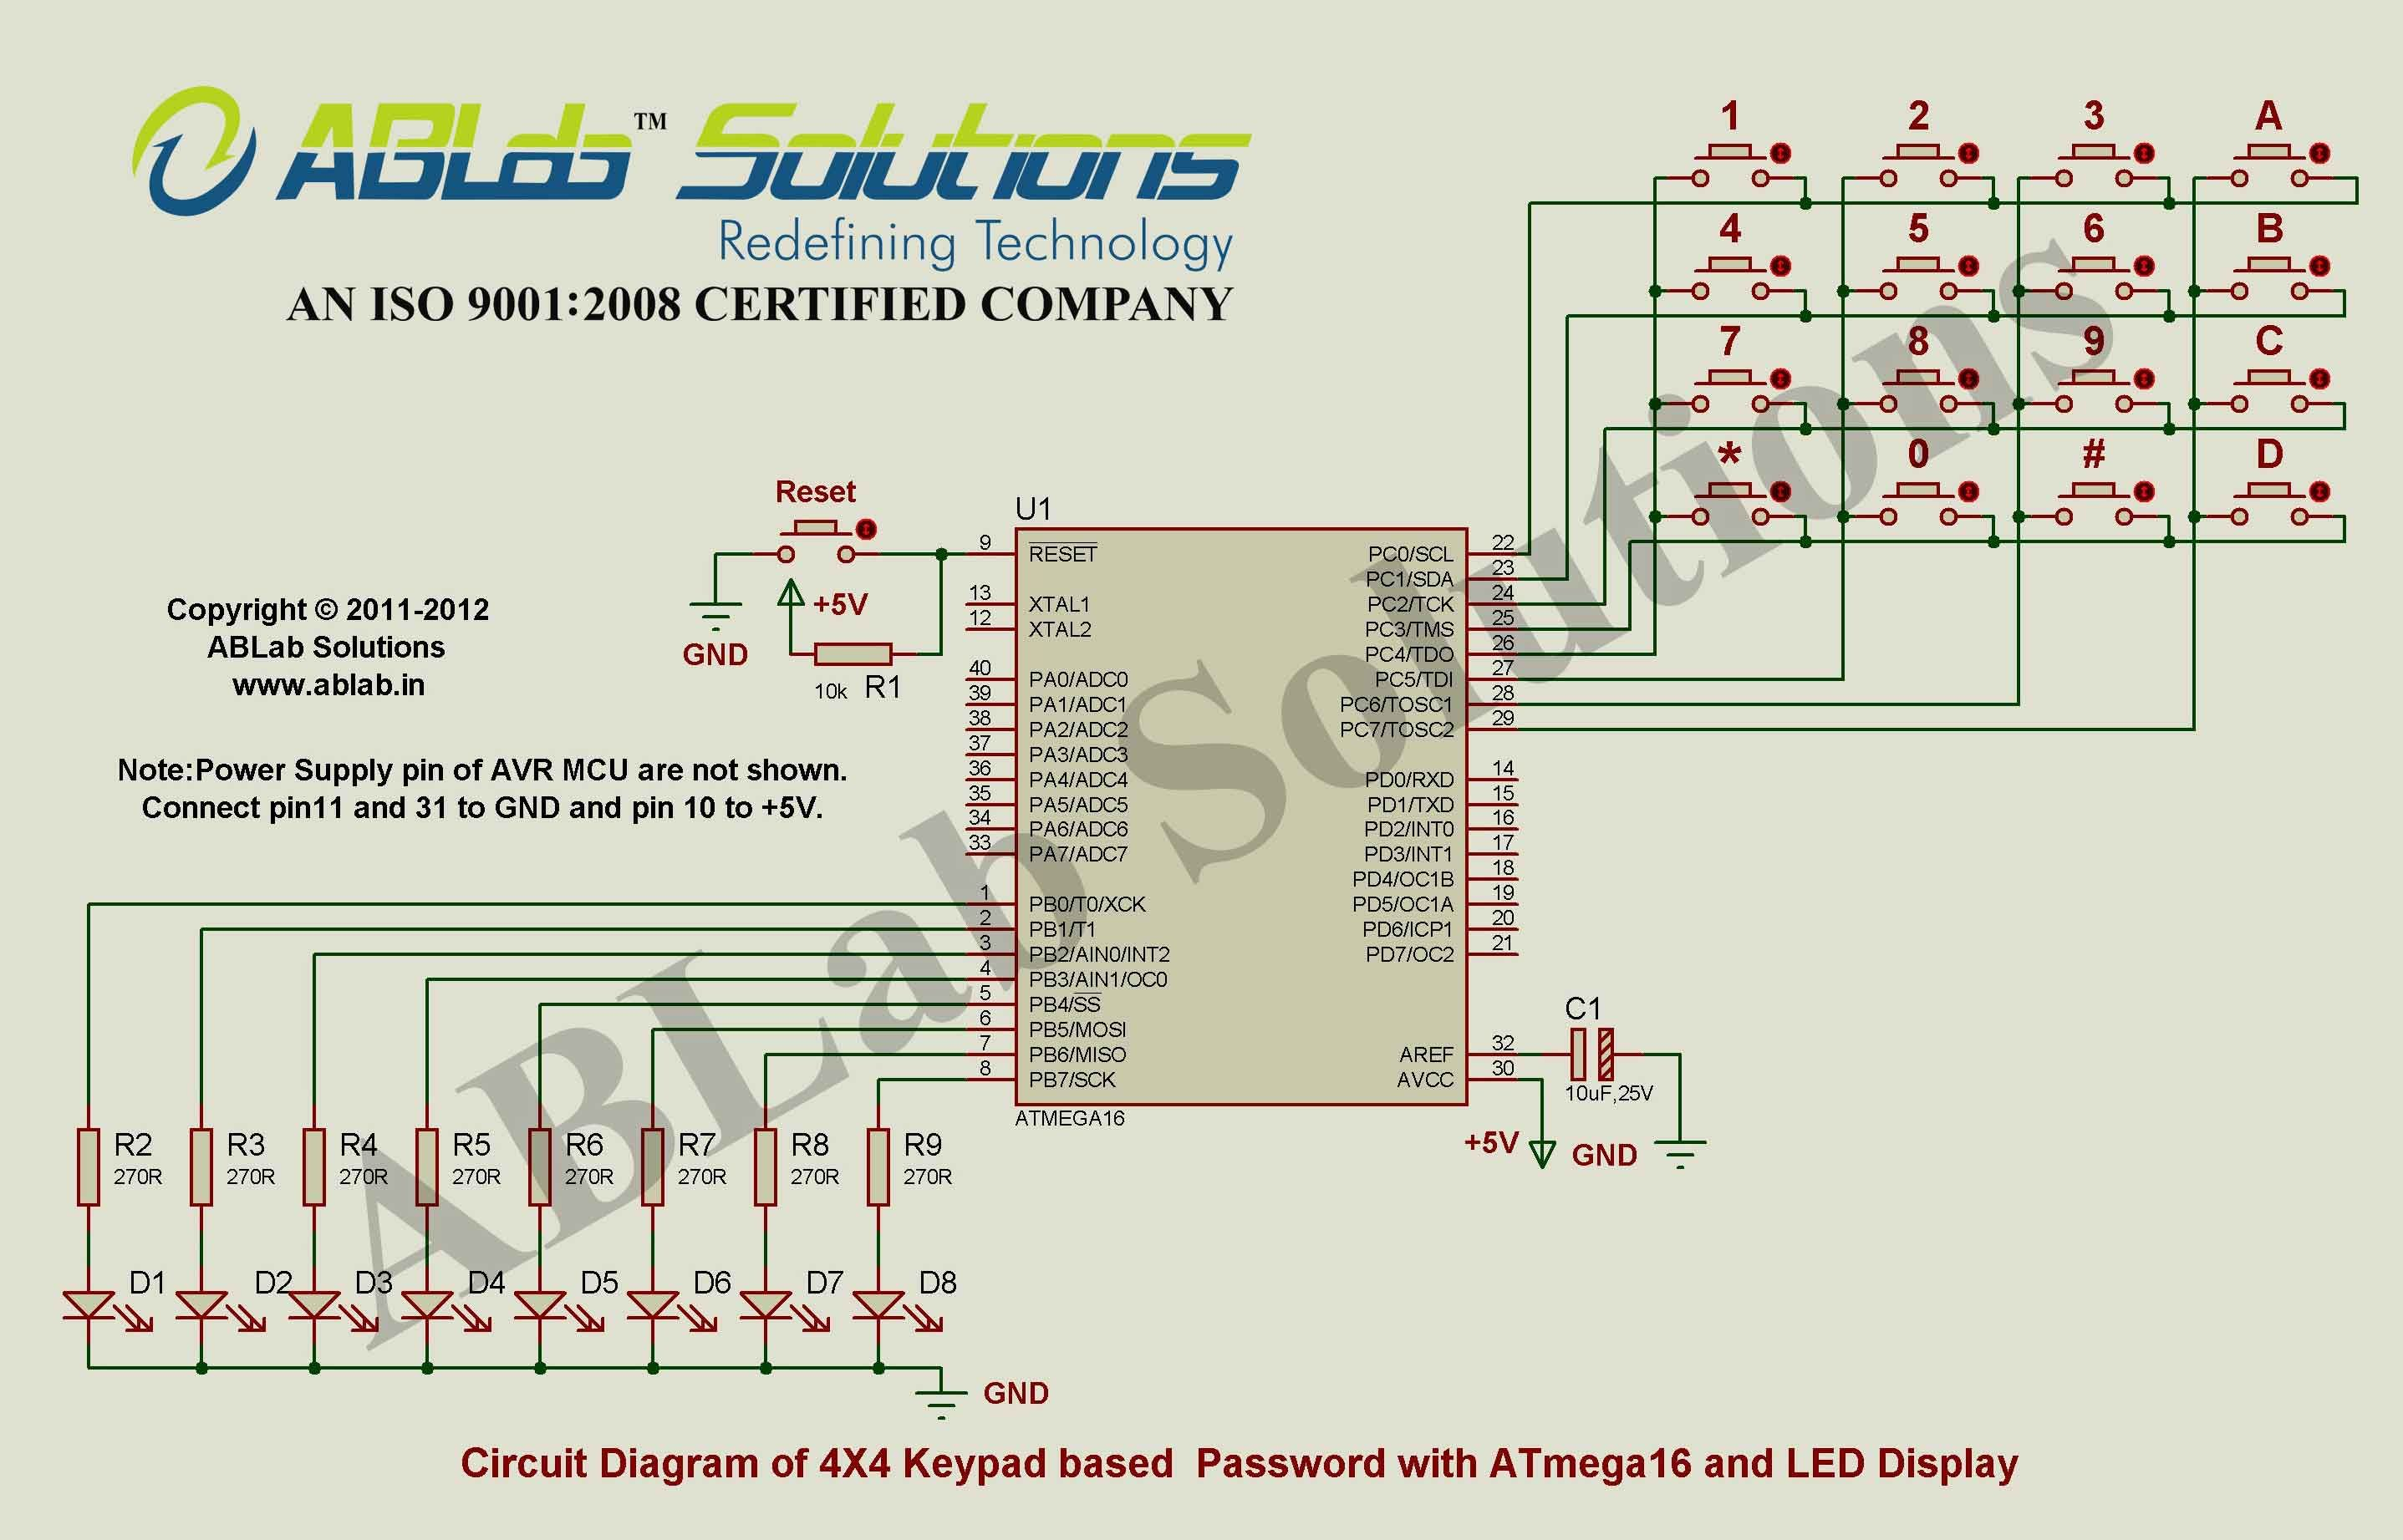 small resolution of x4 keypad based password with avr atmega16 microcontroller and led display circuit diagram ablab solutions